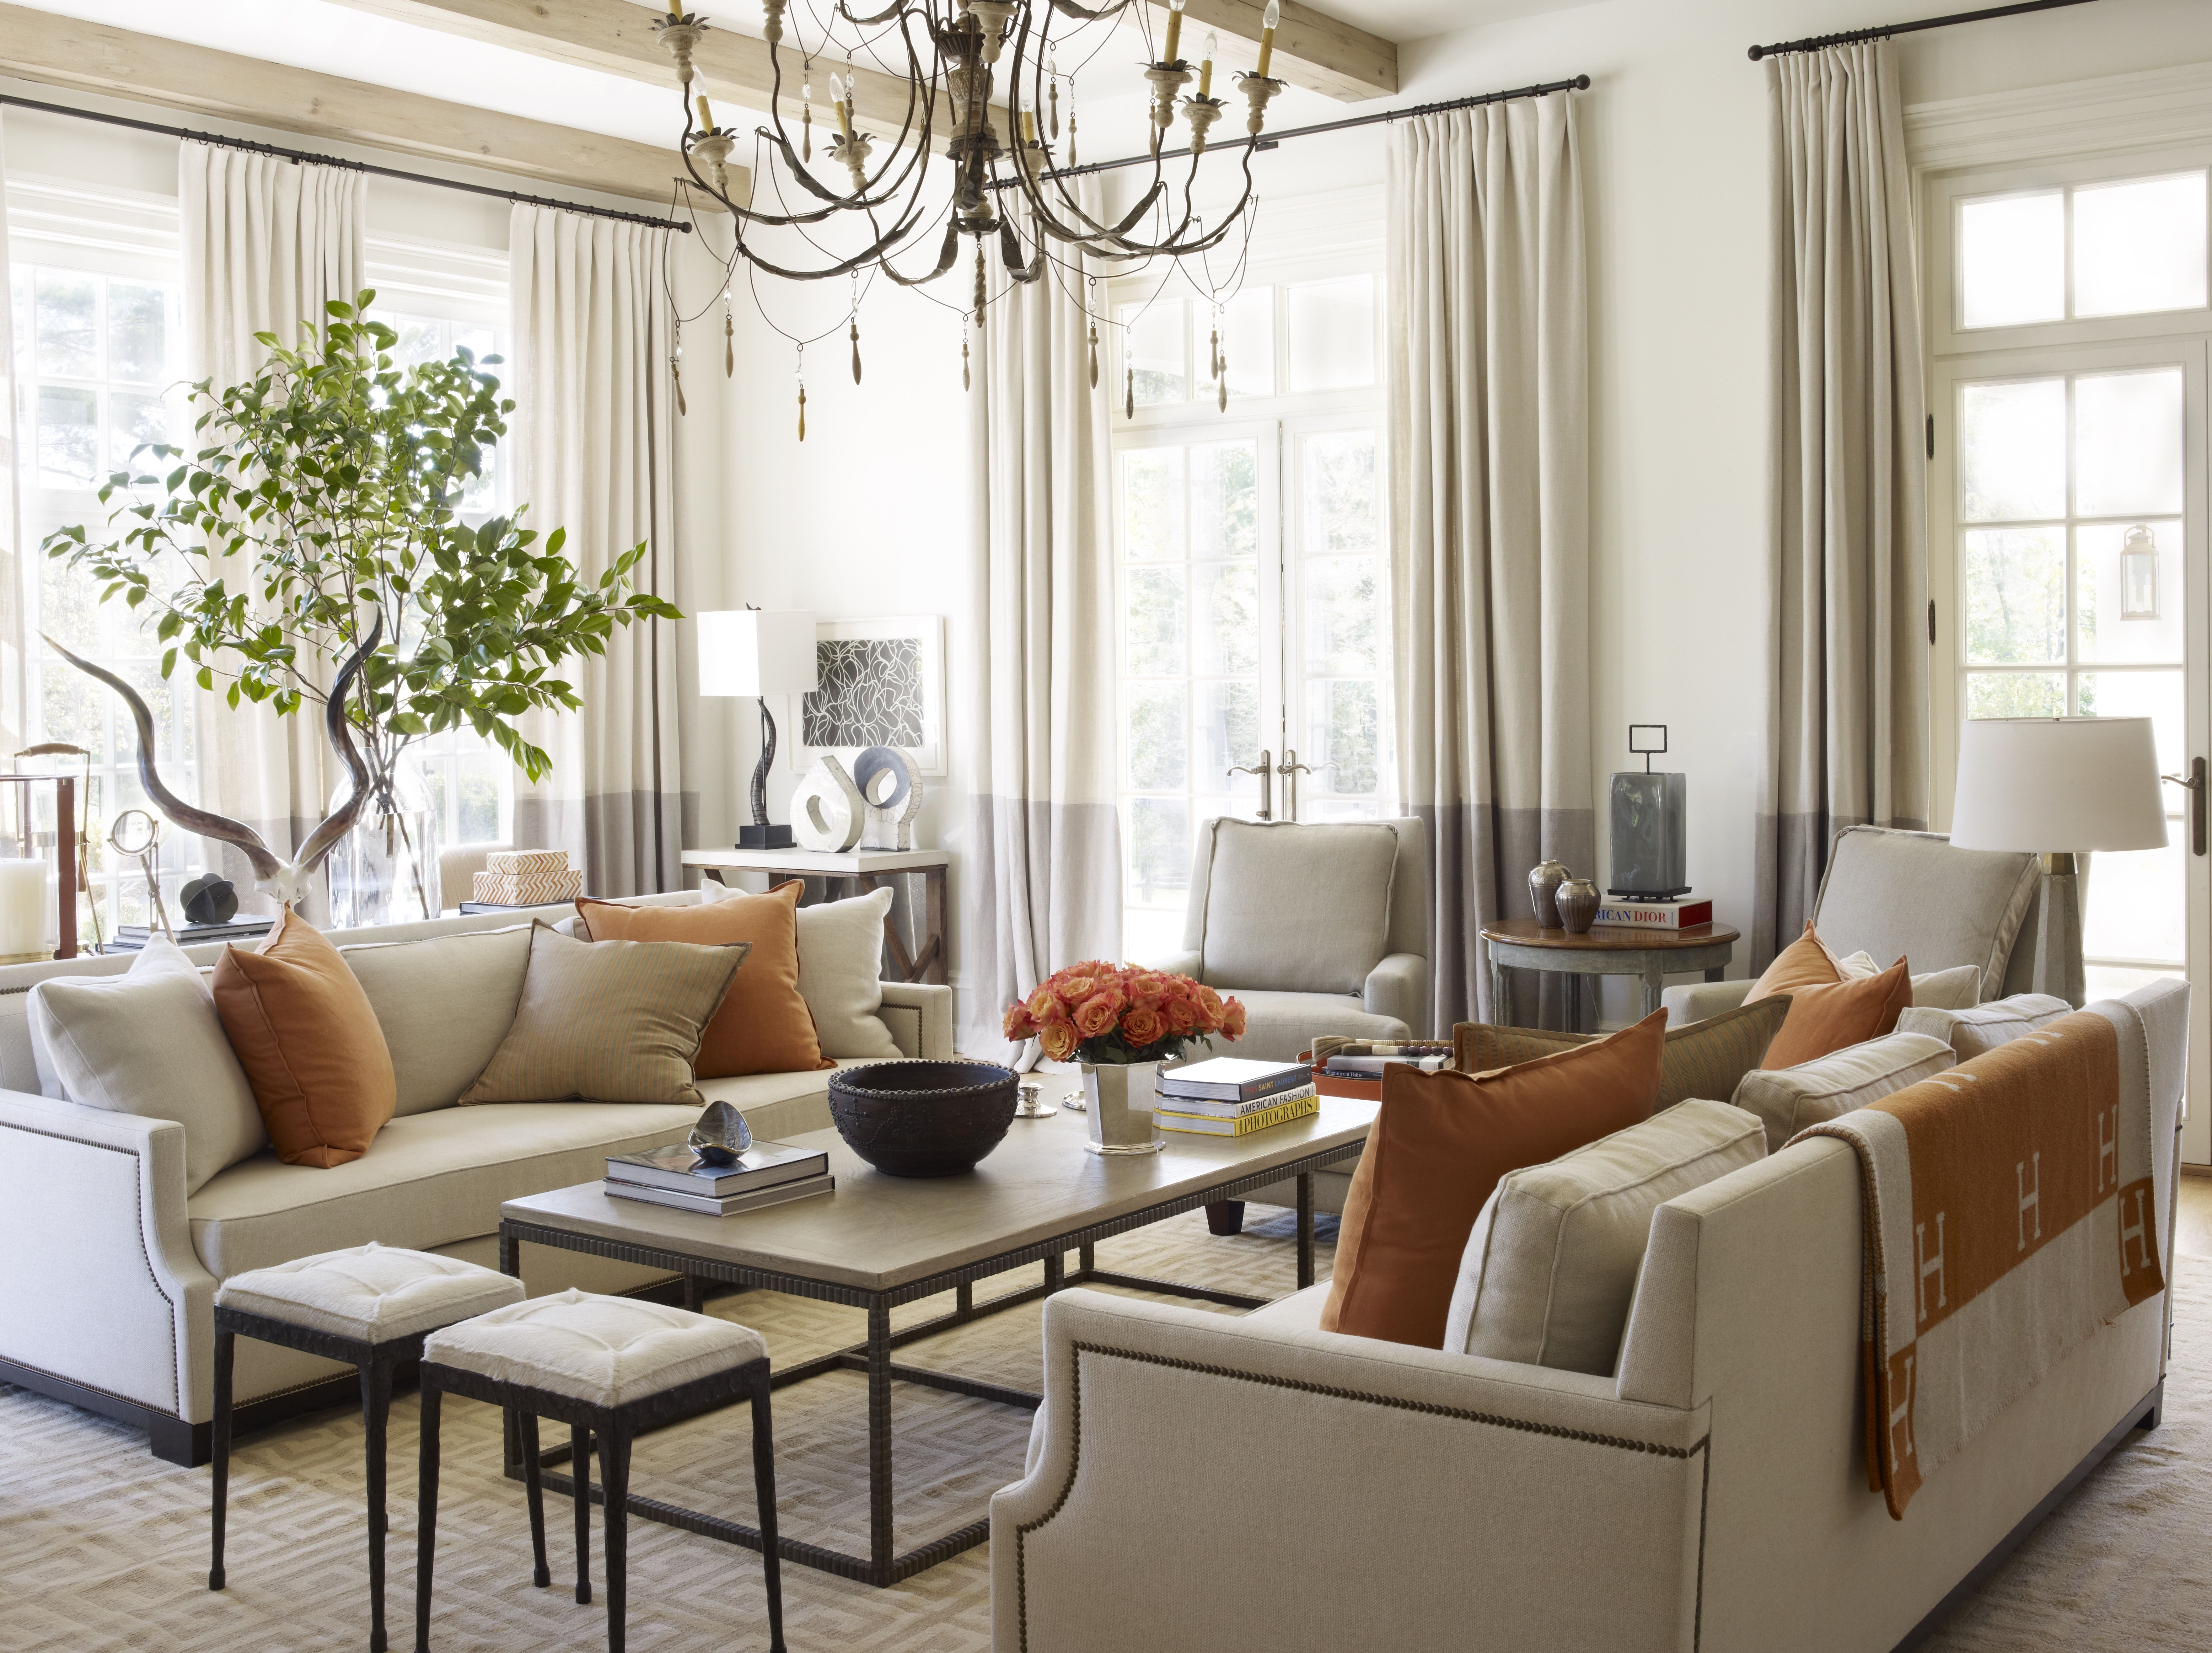 Chic Neutral Family Room With Big Bright Windows Formal Living Room Decor Beige Living Rooms Home Decor